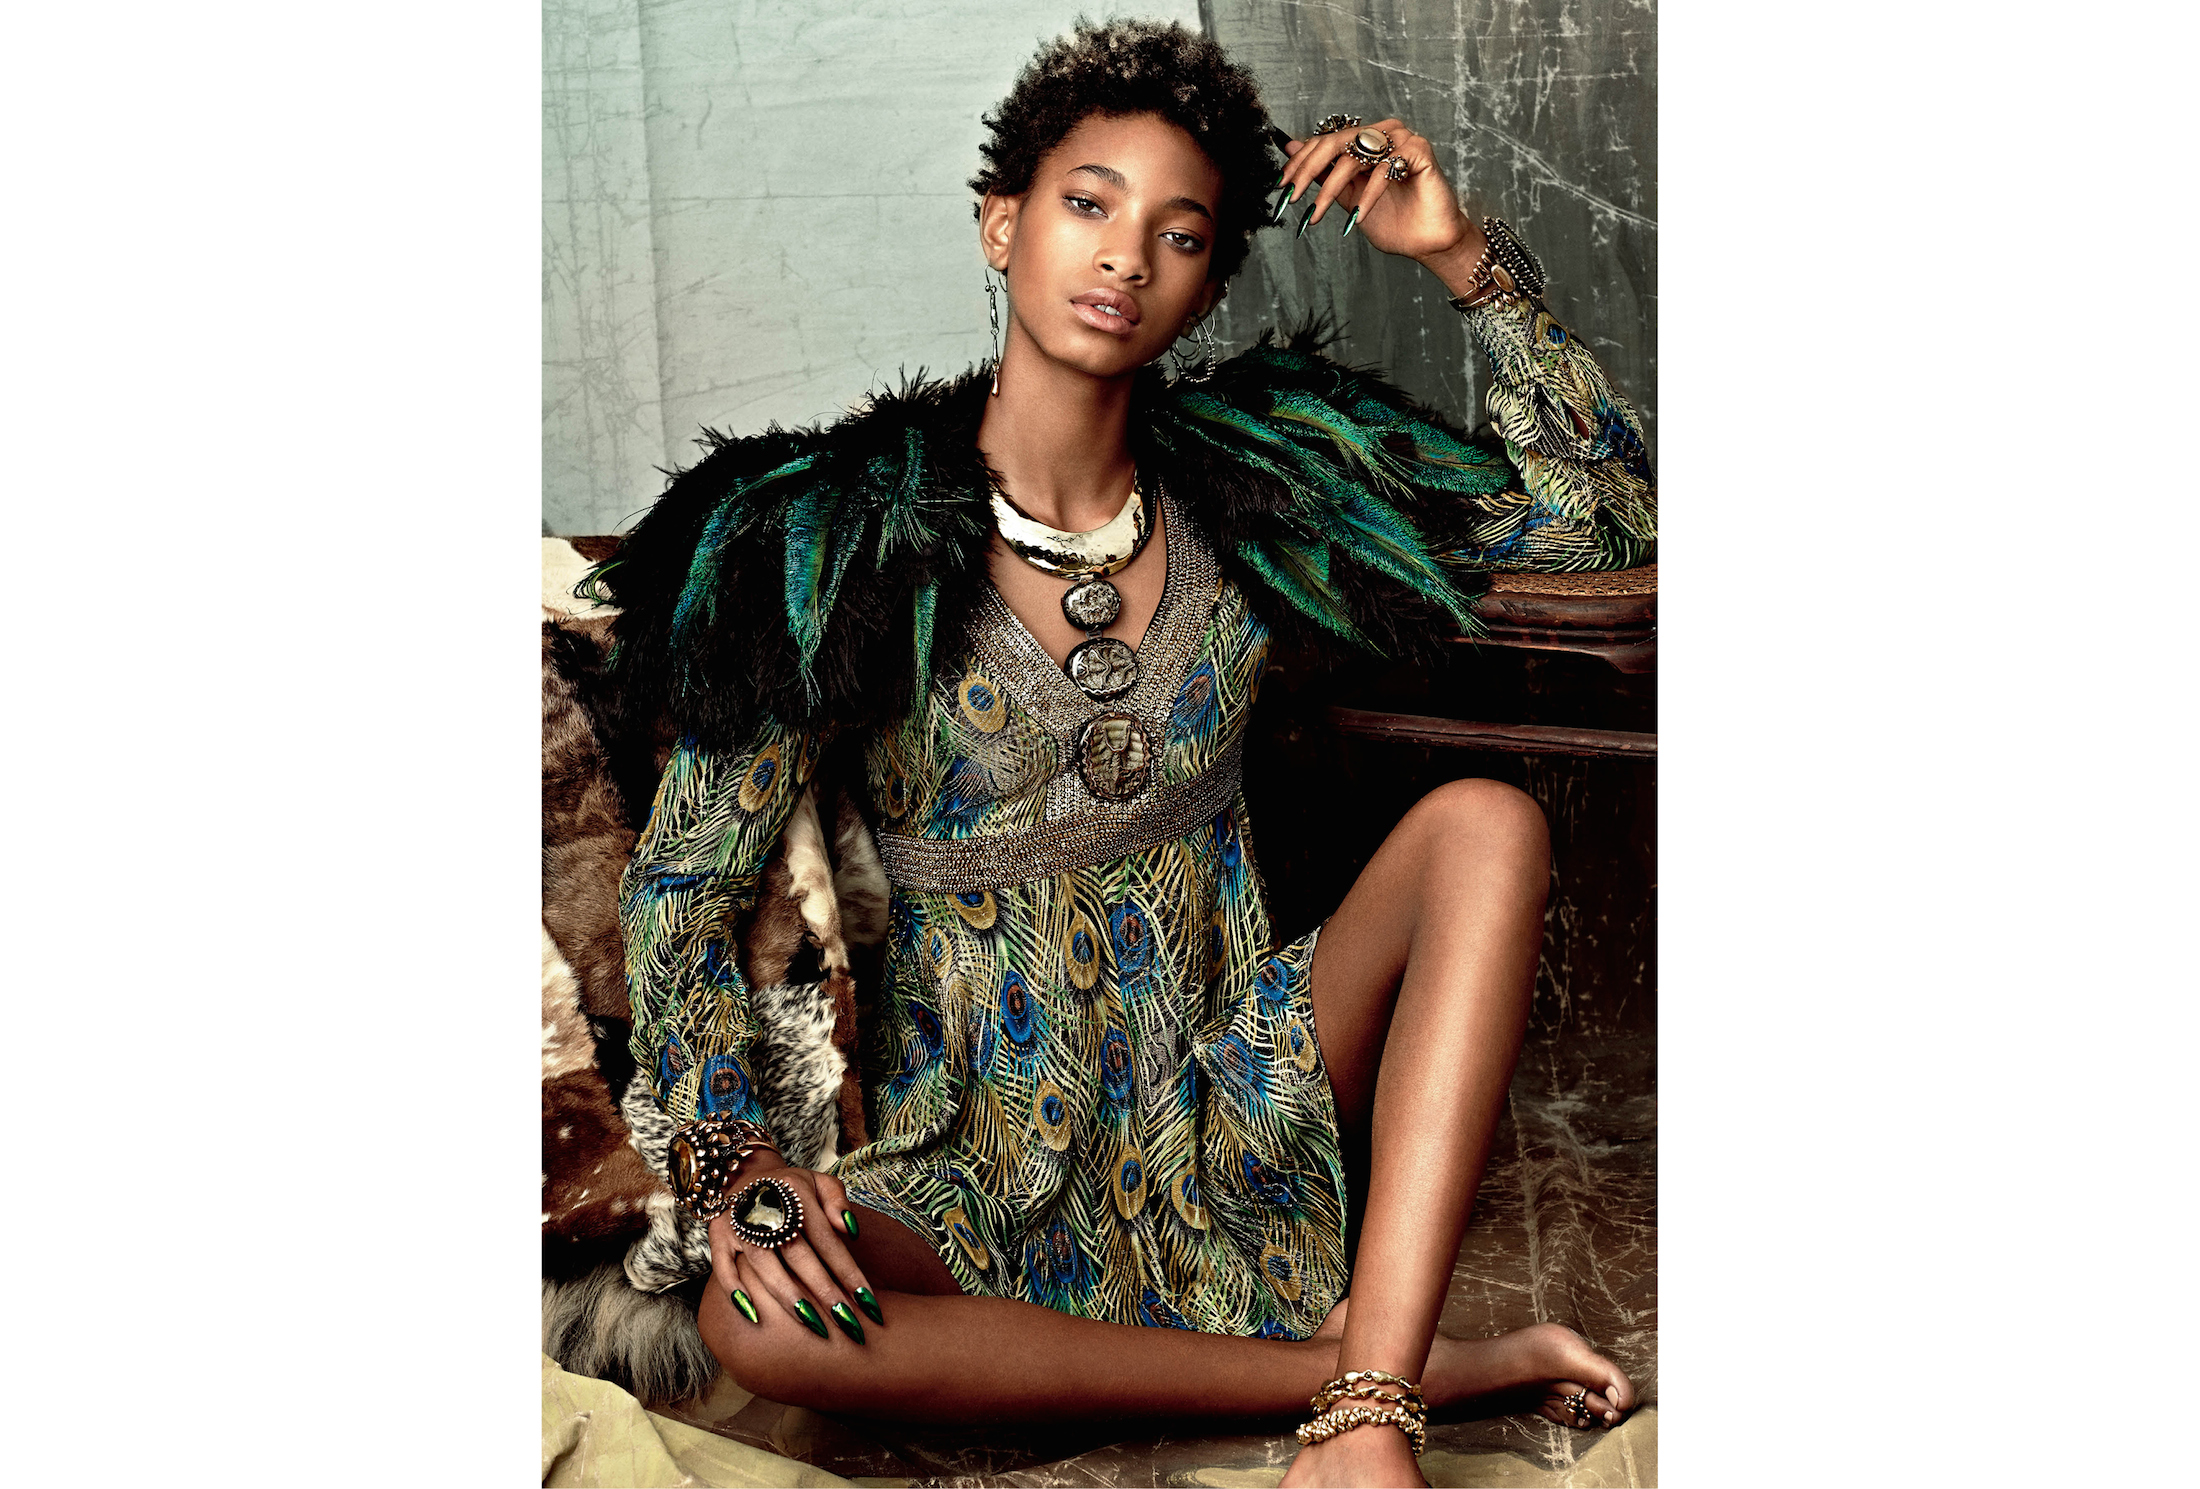 Willow Smith wears dress  Saint Laurent by Hedi Slimane , capelet Stacia Lang, jewelry (throughout) Lisa Eisner, ring (ring finger, her left) Lisa Eisner for  Tom Ford